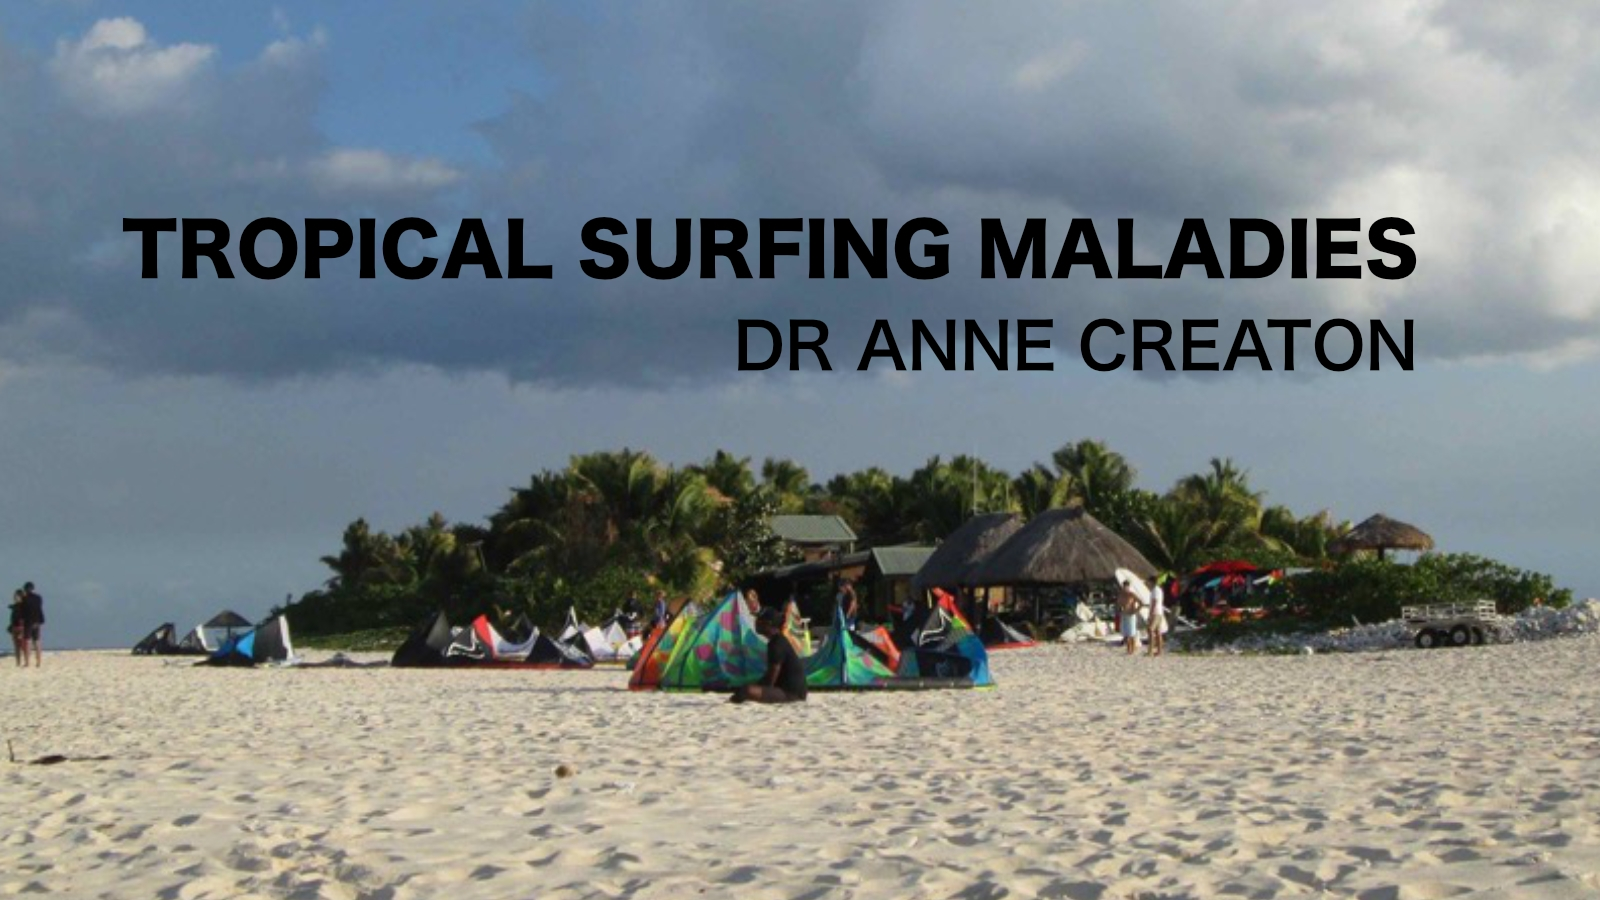 Tropical disease in remote Surfing environment